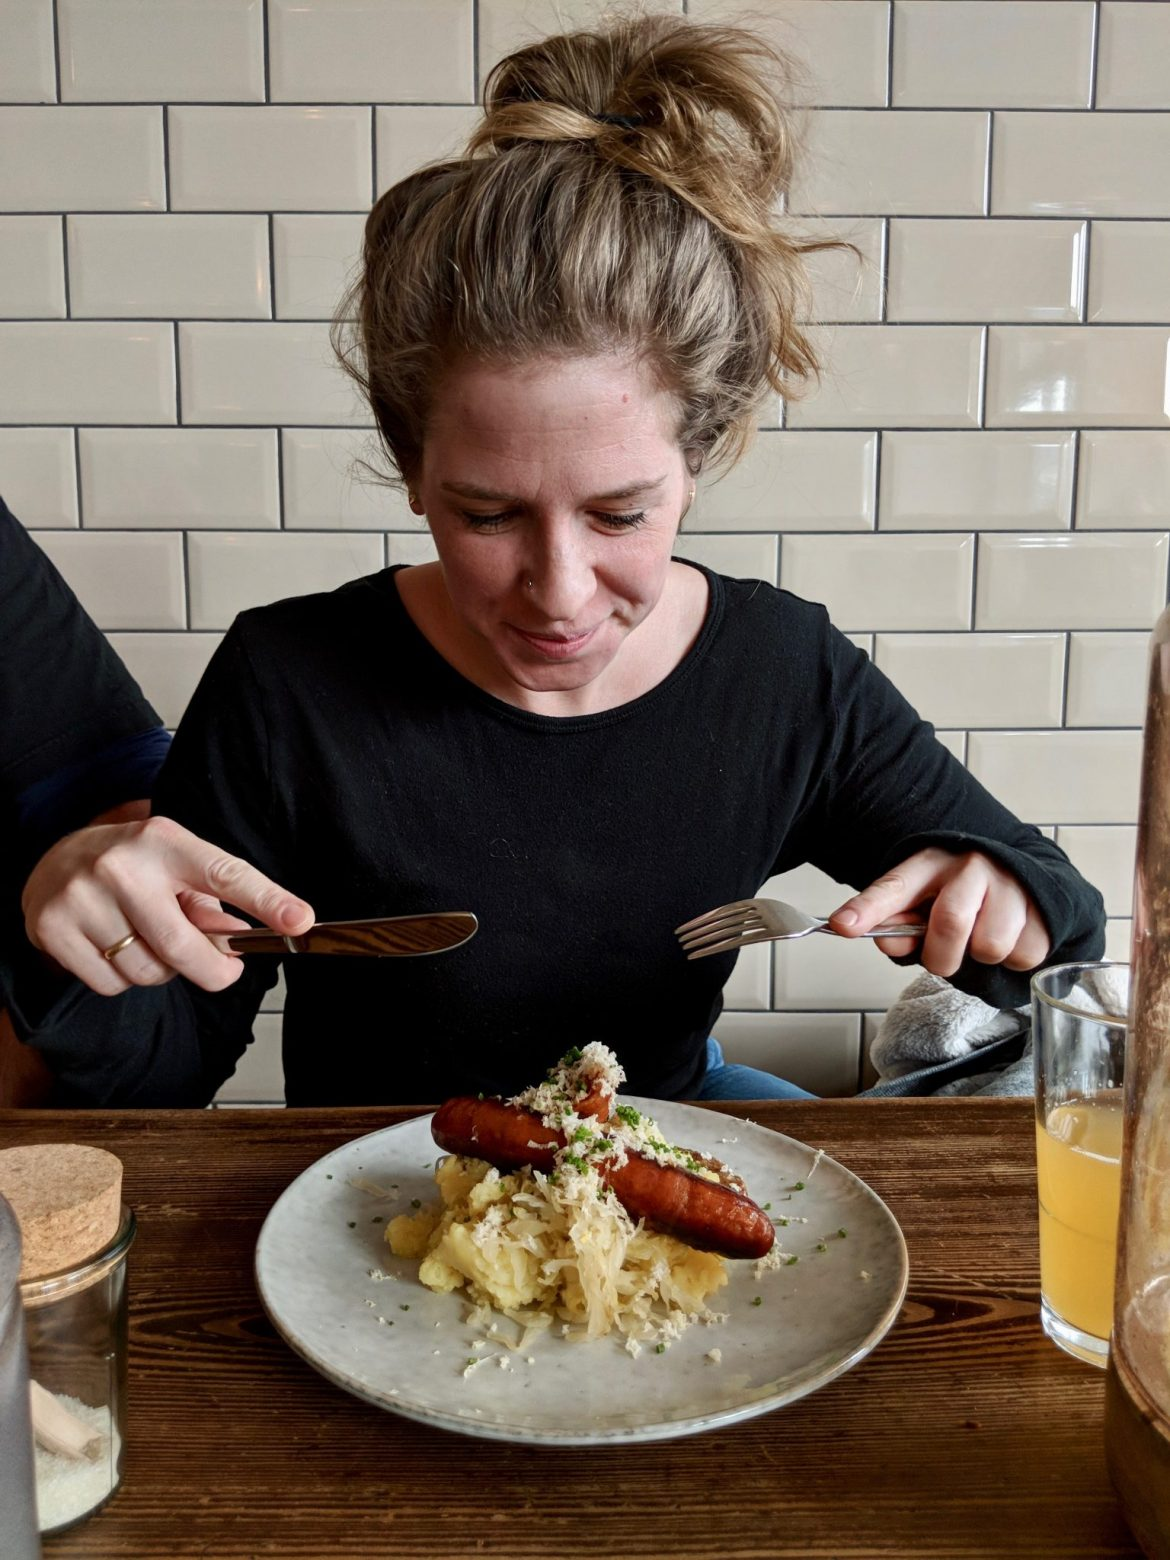 Christie Dietz eating sausages on a white plate and wooden table against a tiled backdrop